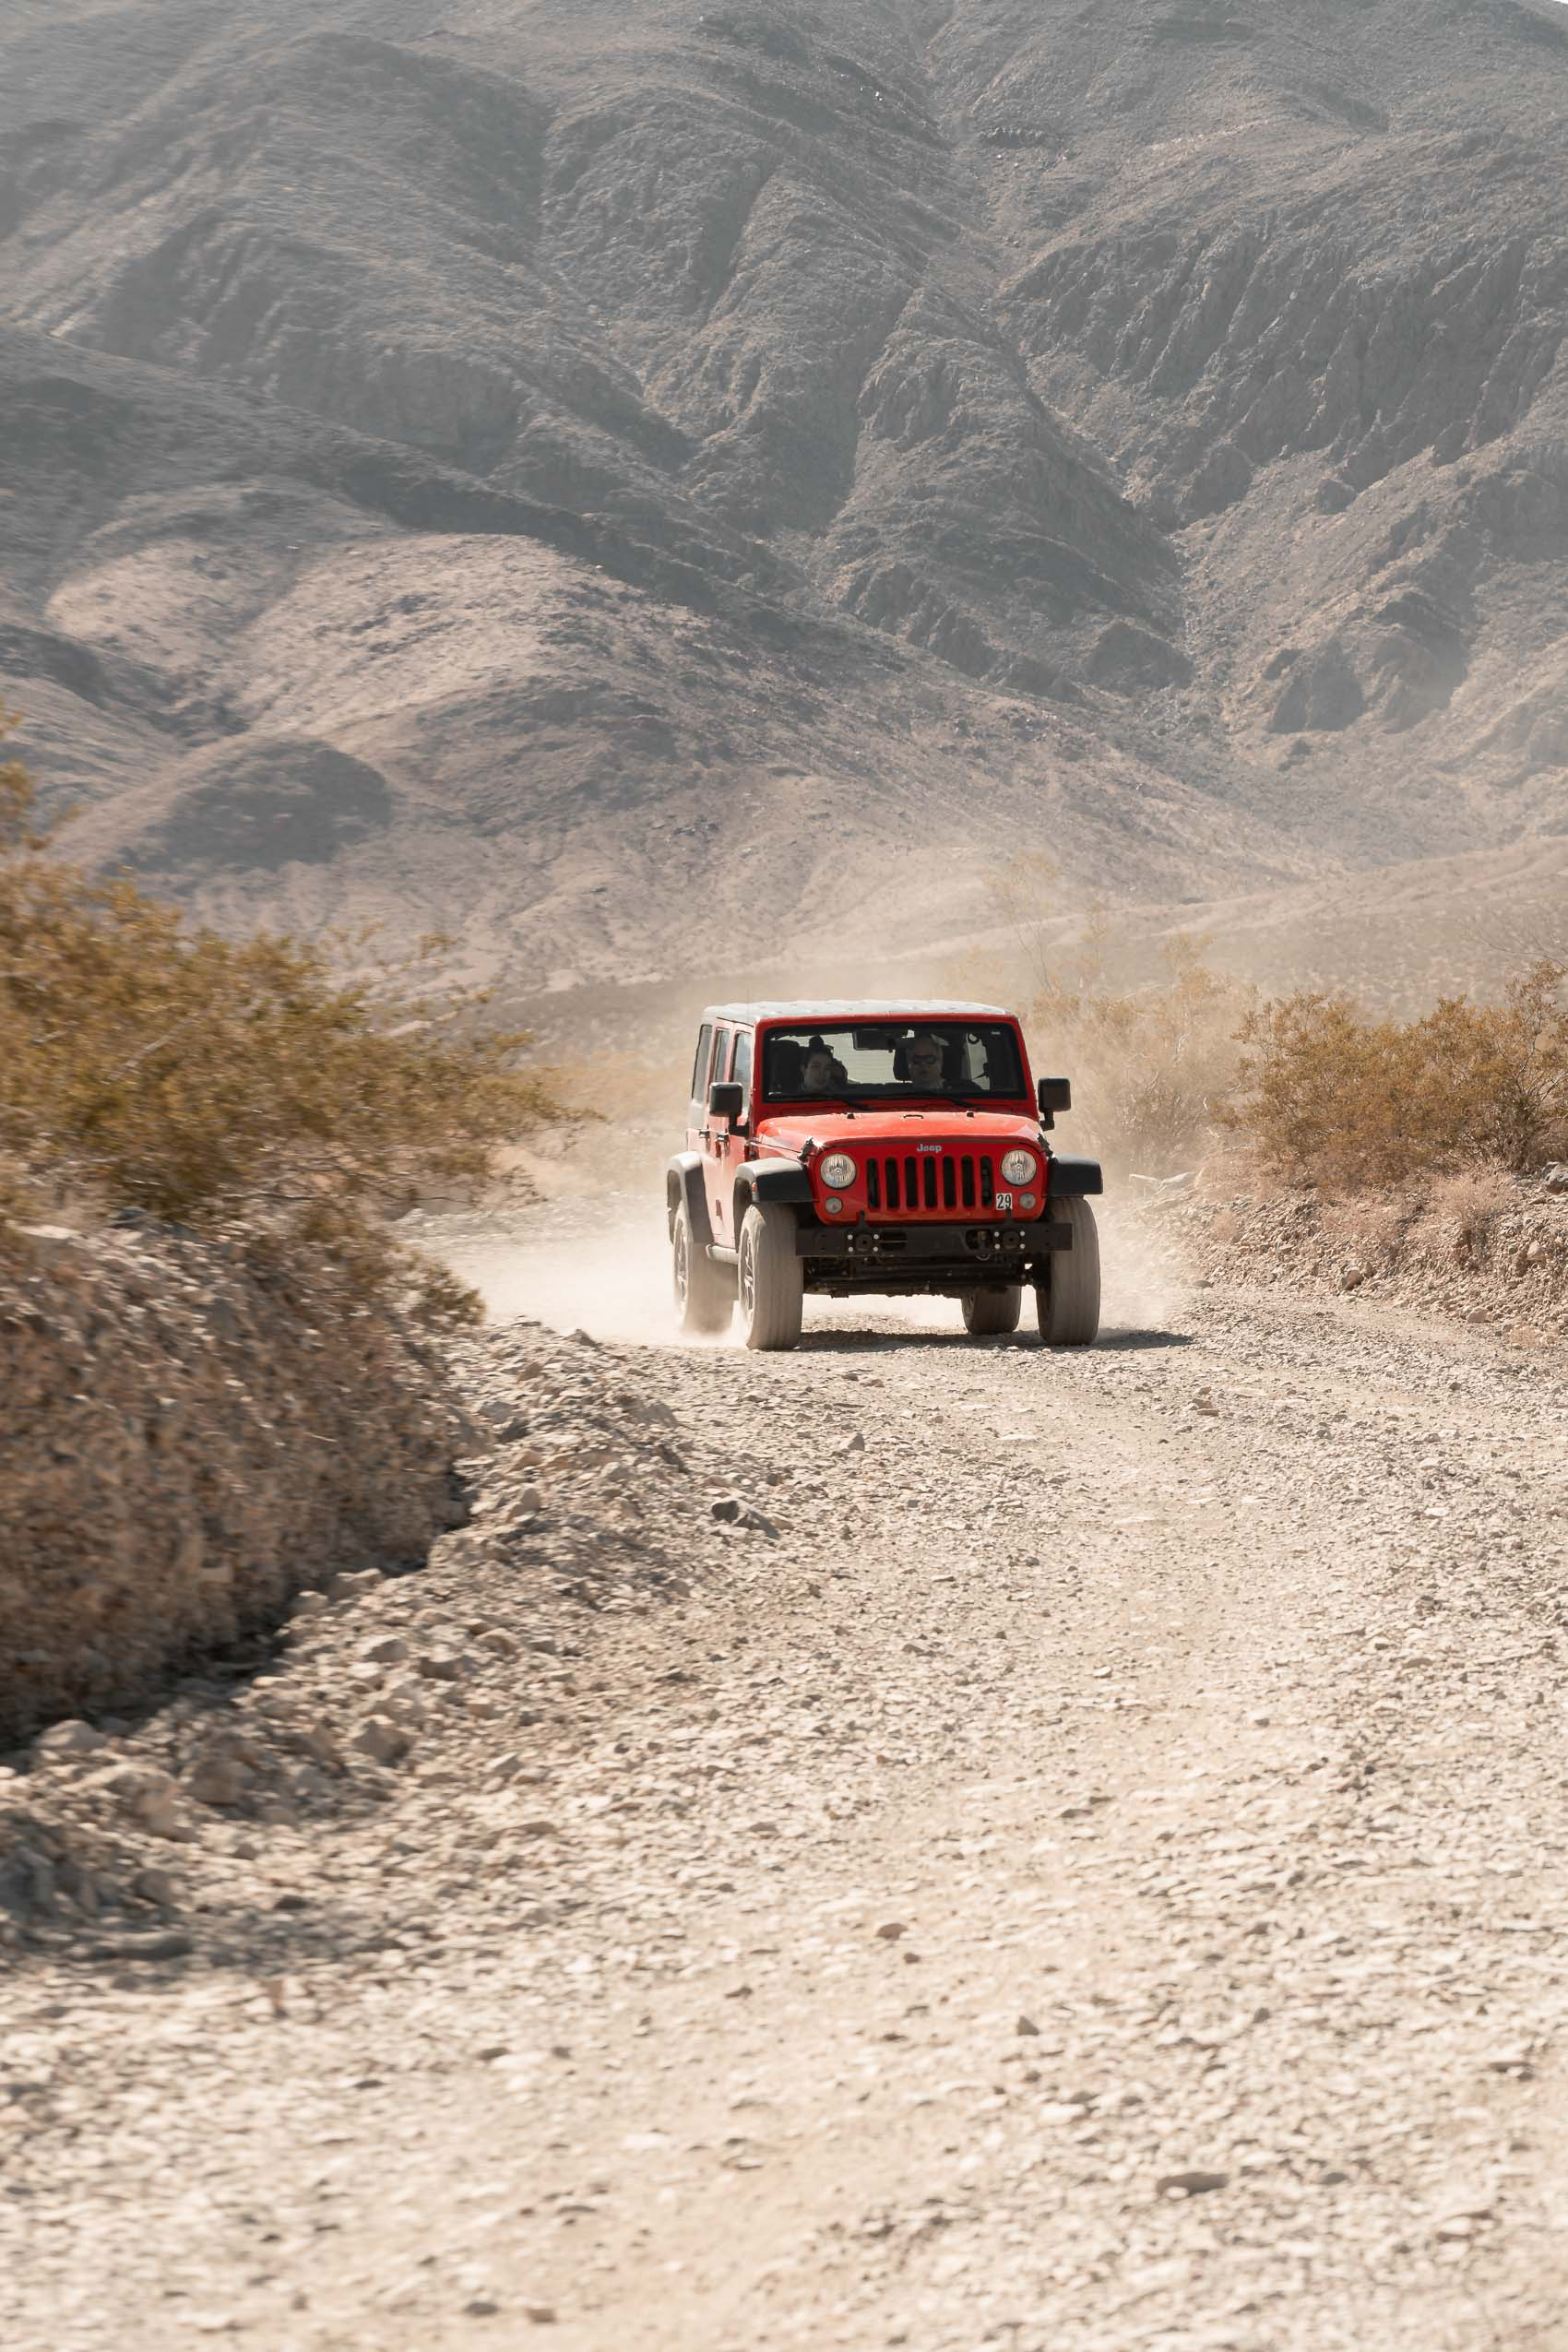 Jeep Wrangler on dirt road Death Valley California